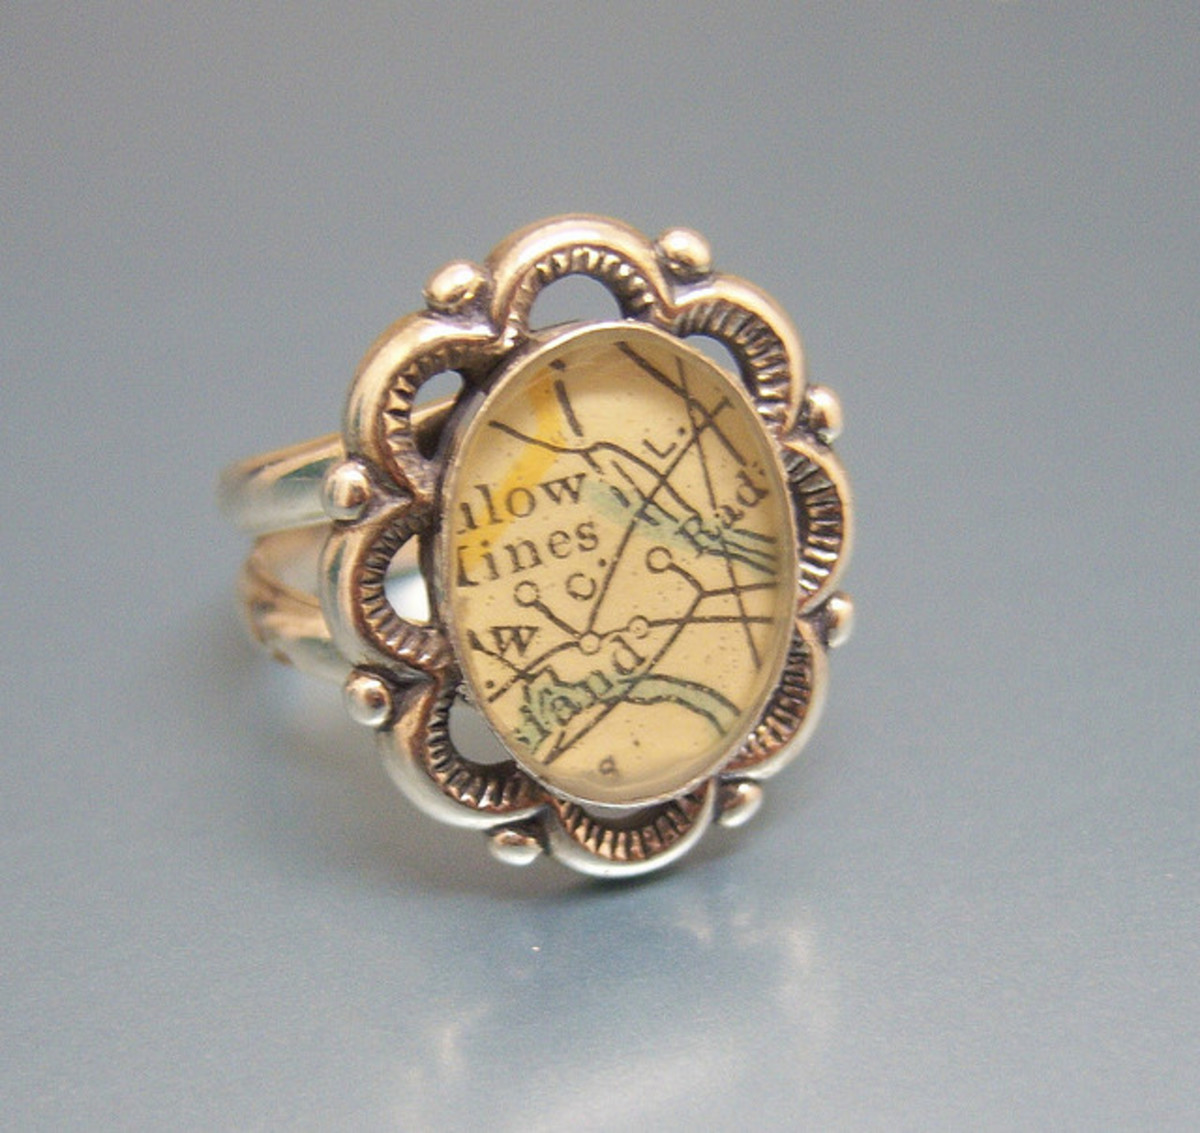 A vintage inspired ring with a scrapbook image of an old fashioned map